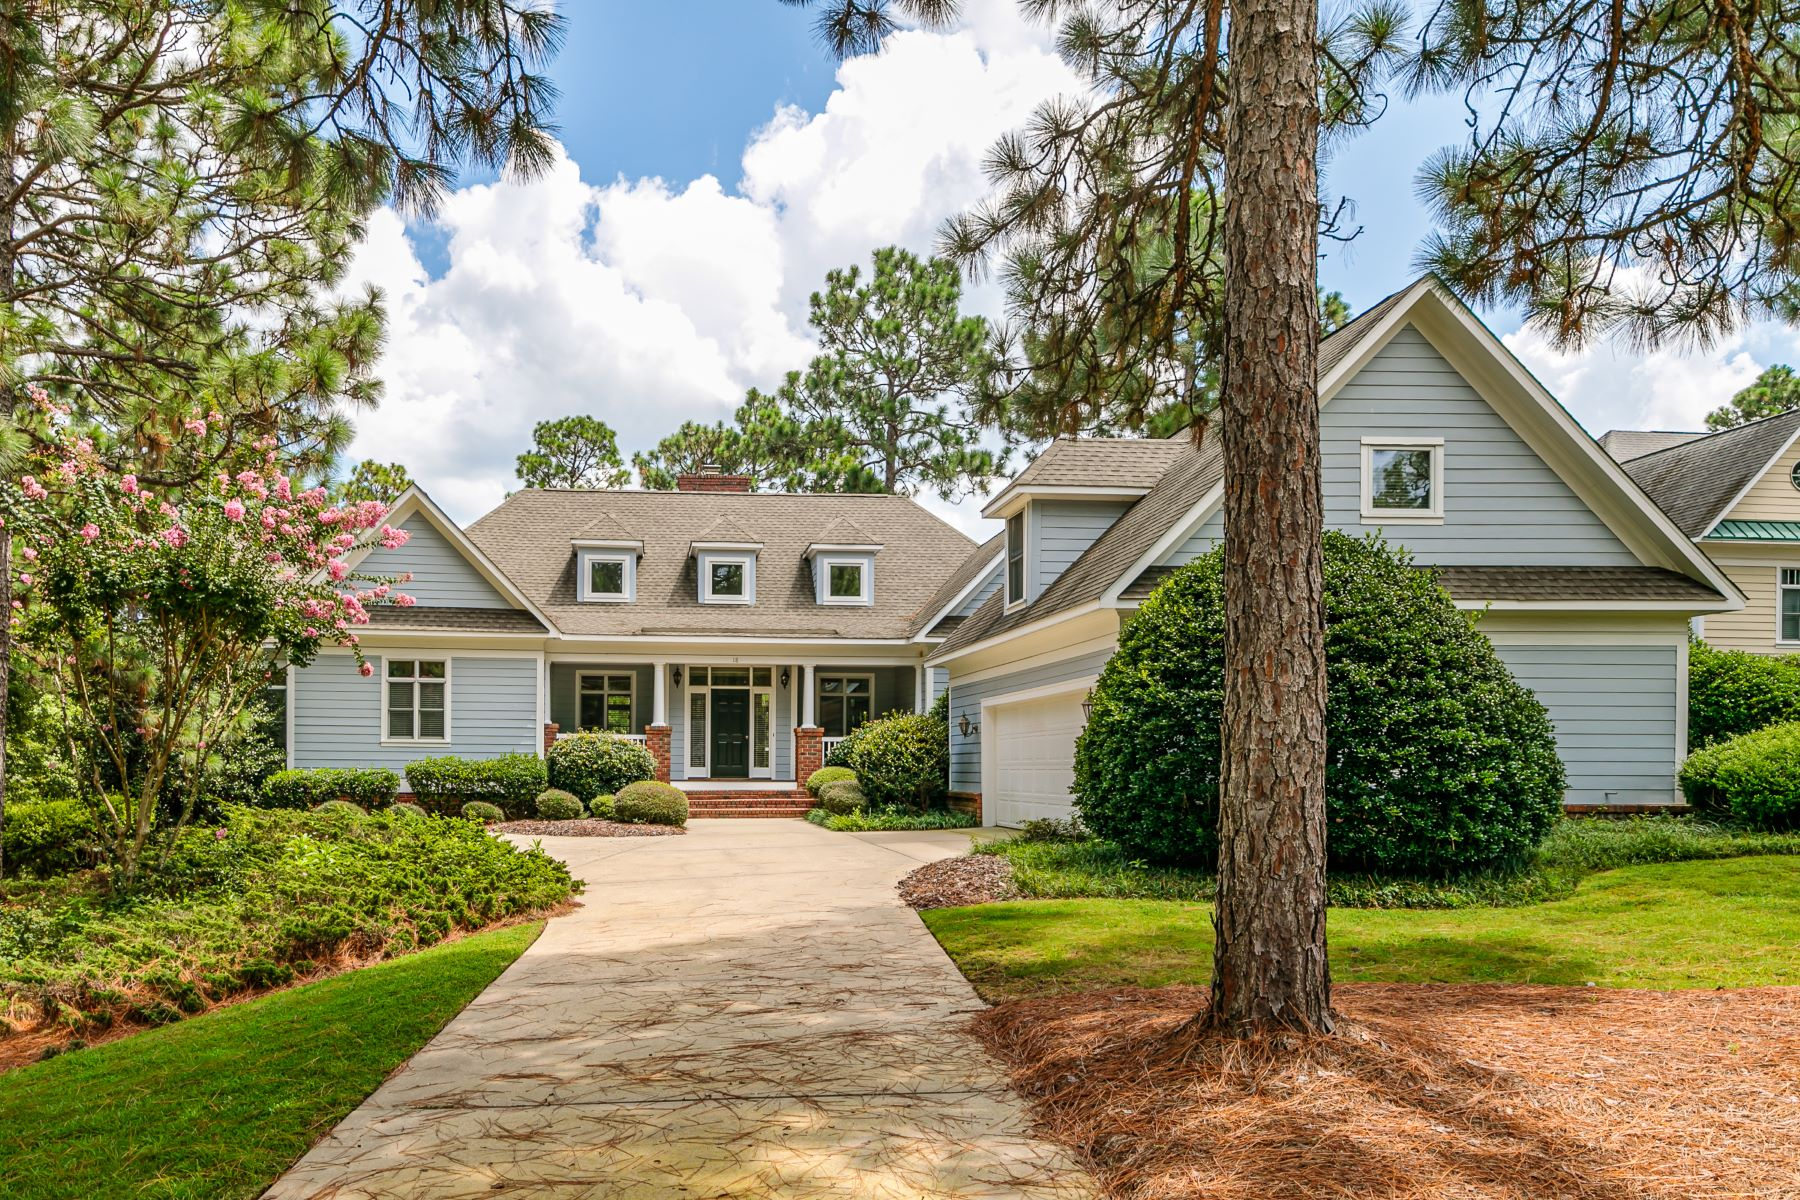 Single Family Homes for Active at 18 Granville Dr. Pinehurst, North Carolina 28374 United States